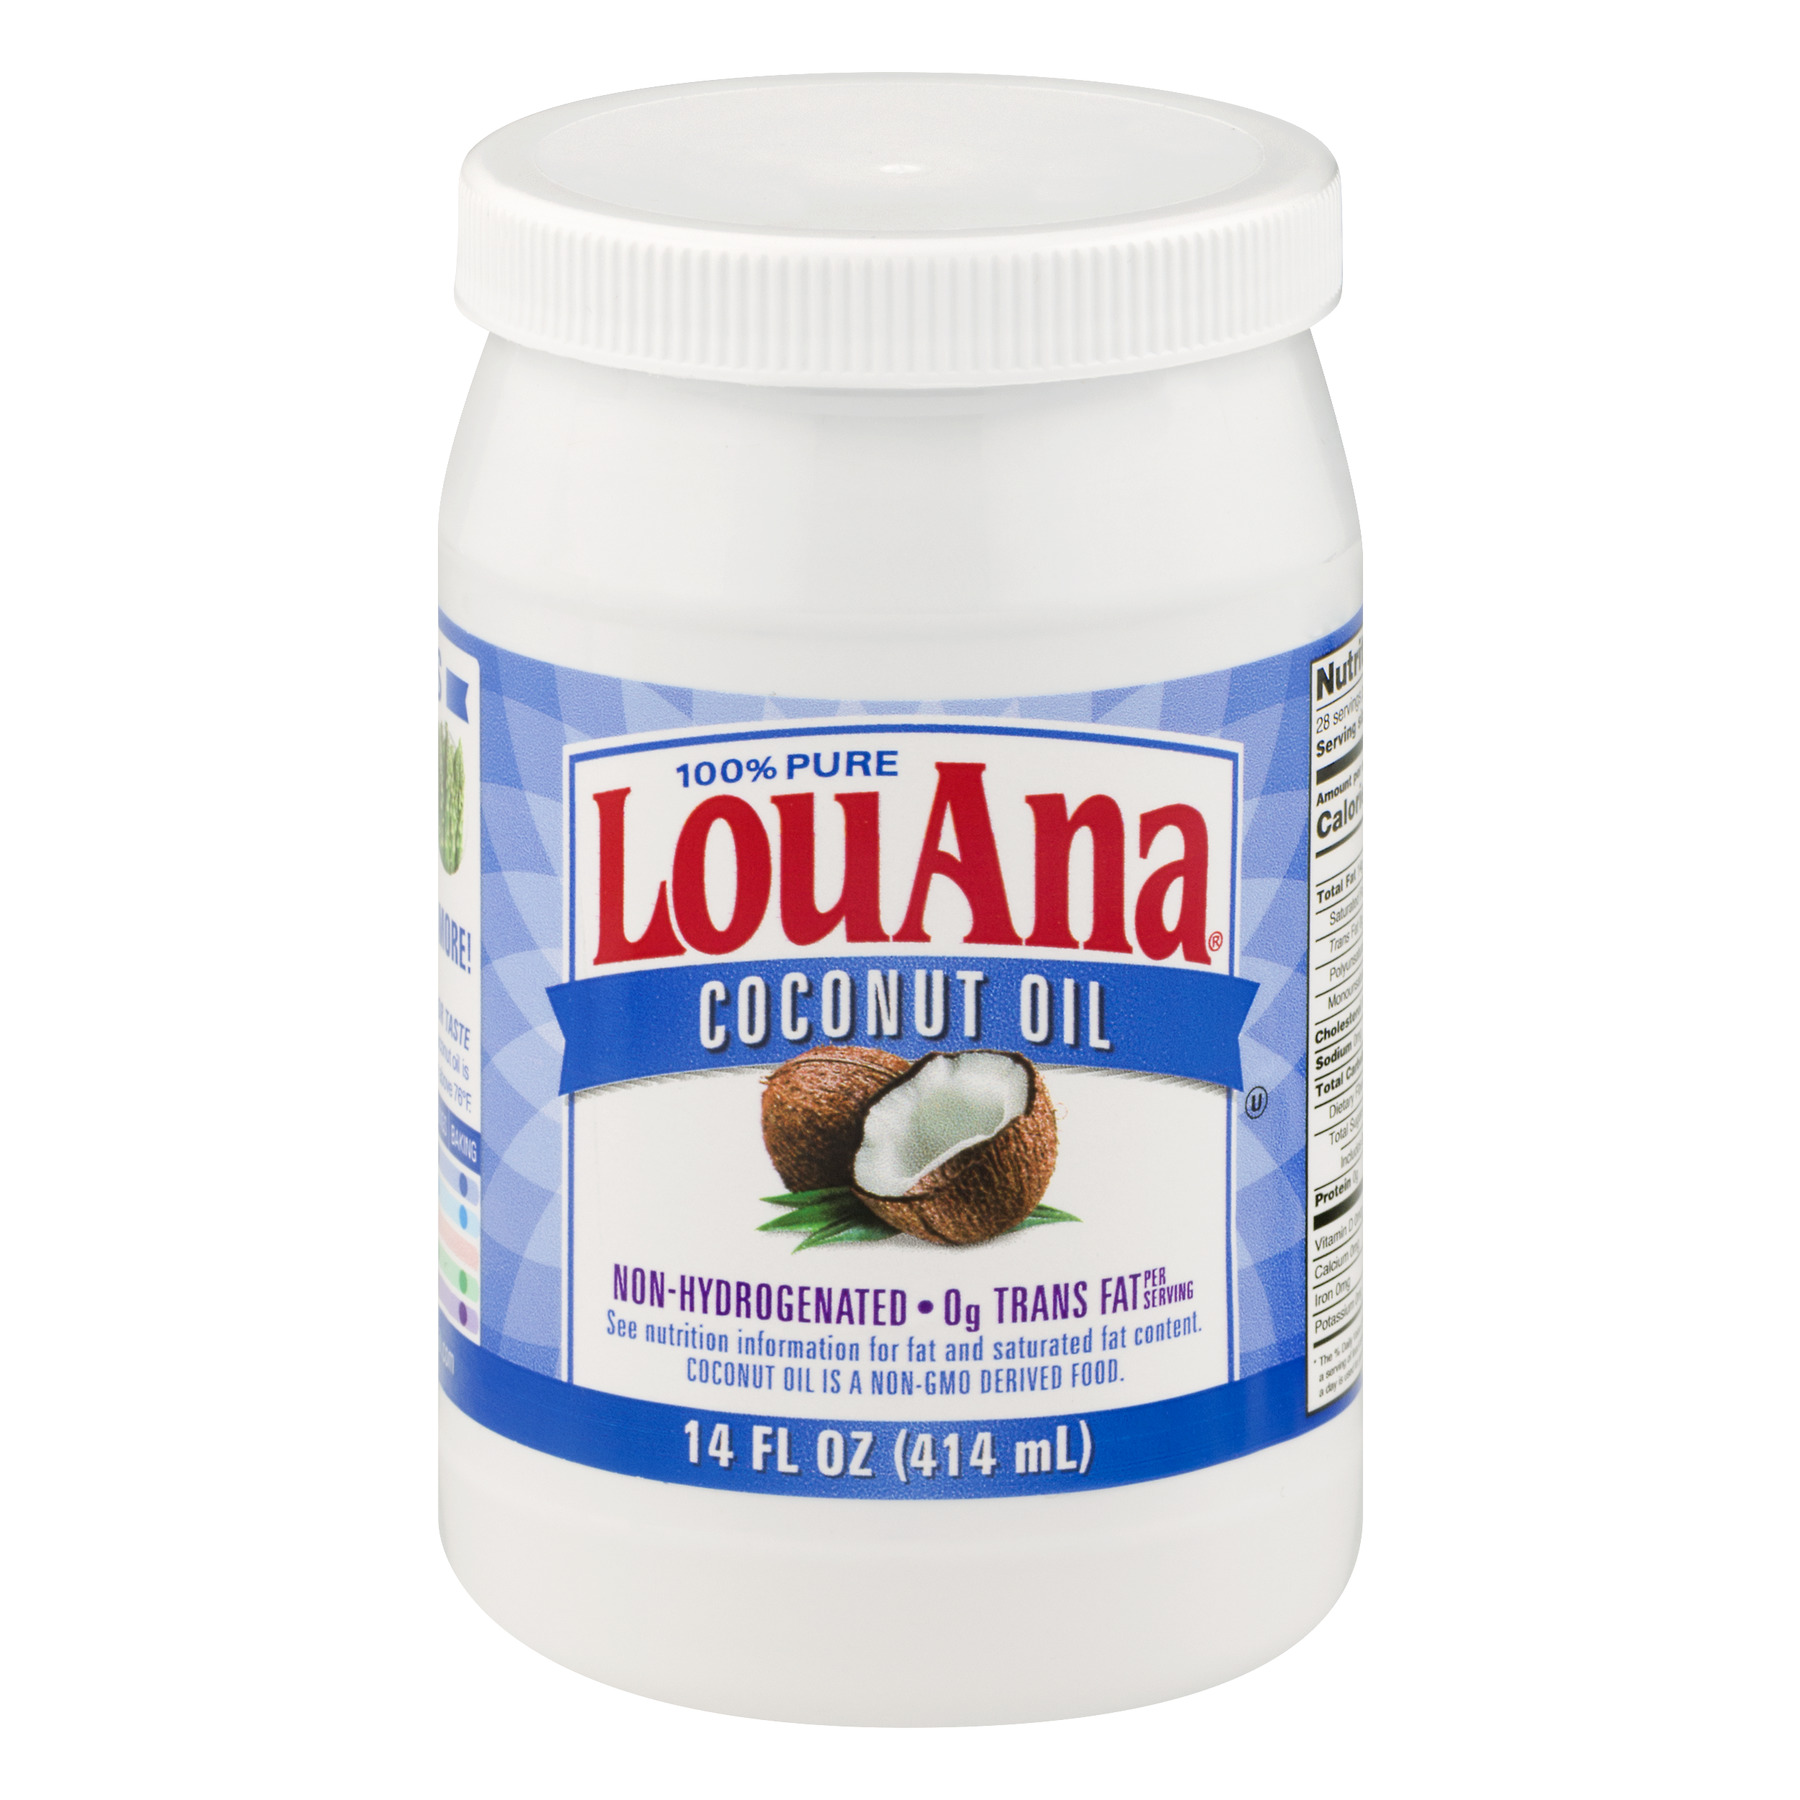 LouAna Pure Coconut Oil, 14.0 FL OZ